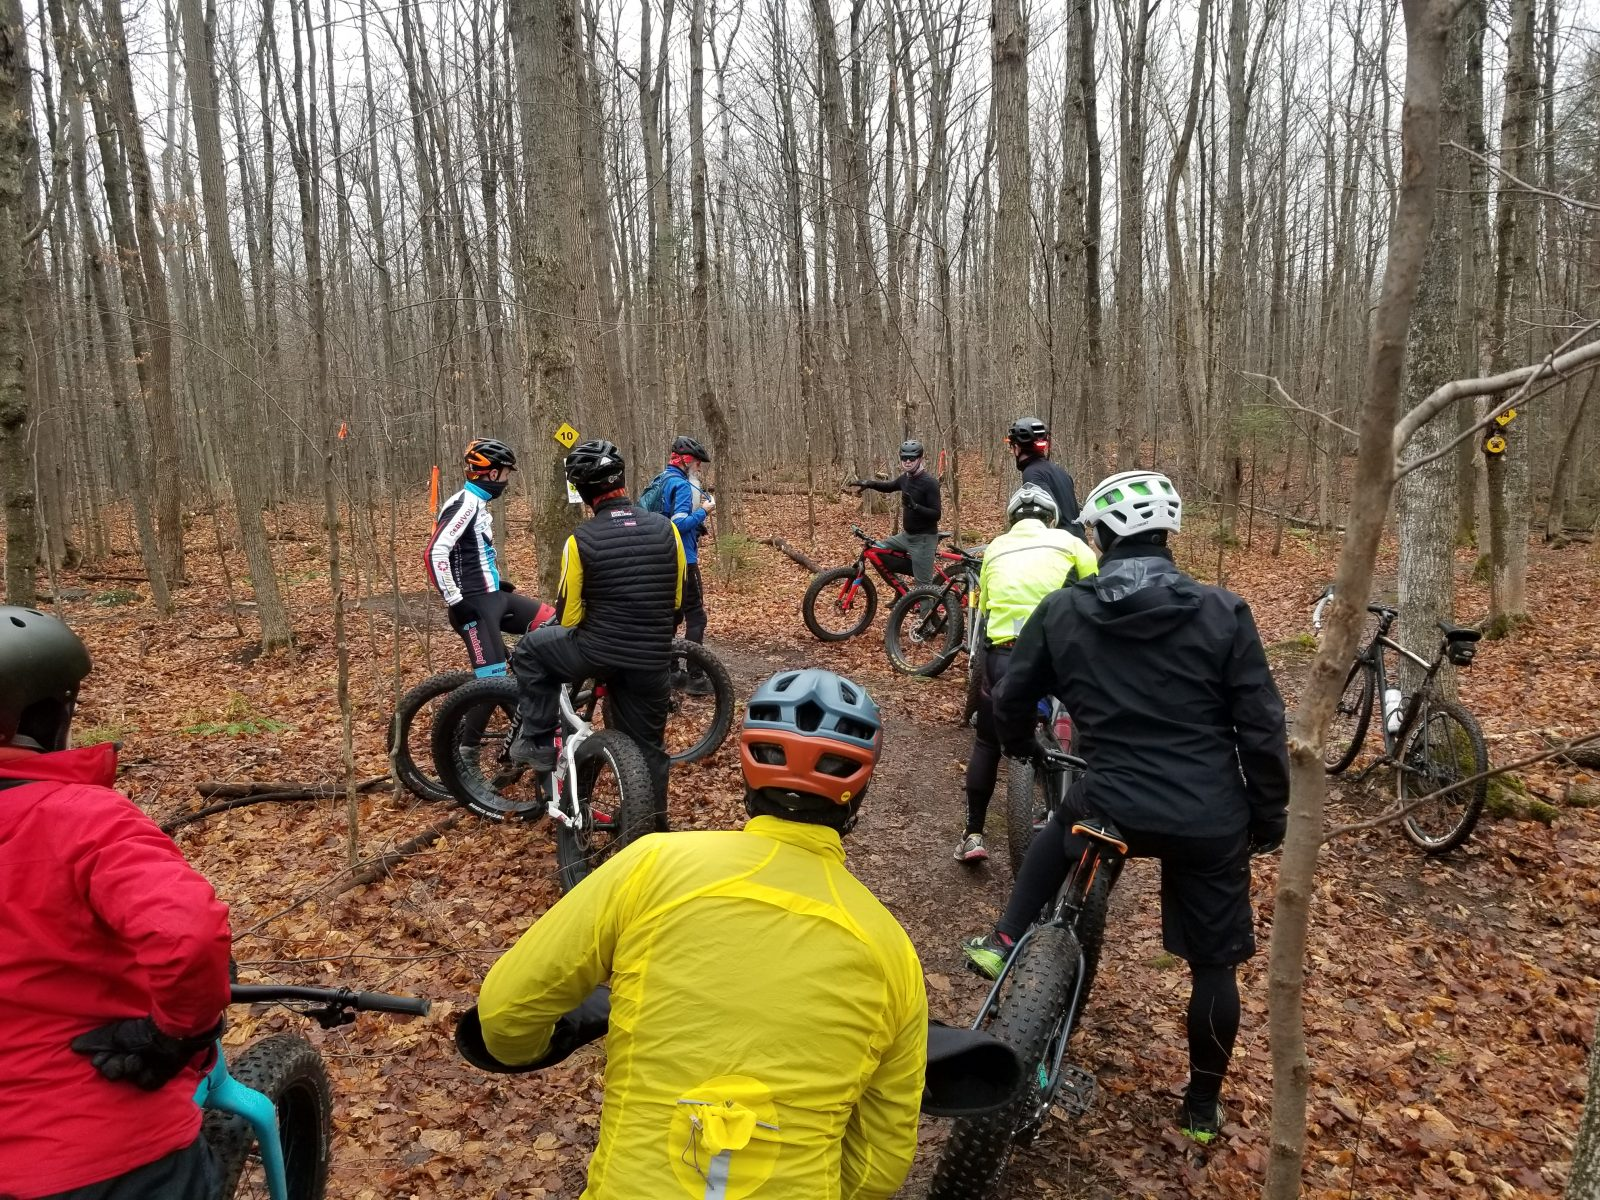 New trail showcased at Summerstown Trails